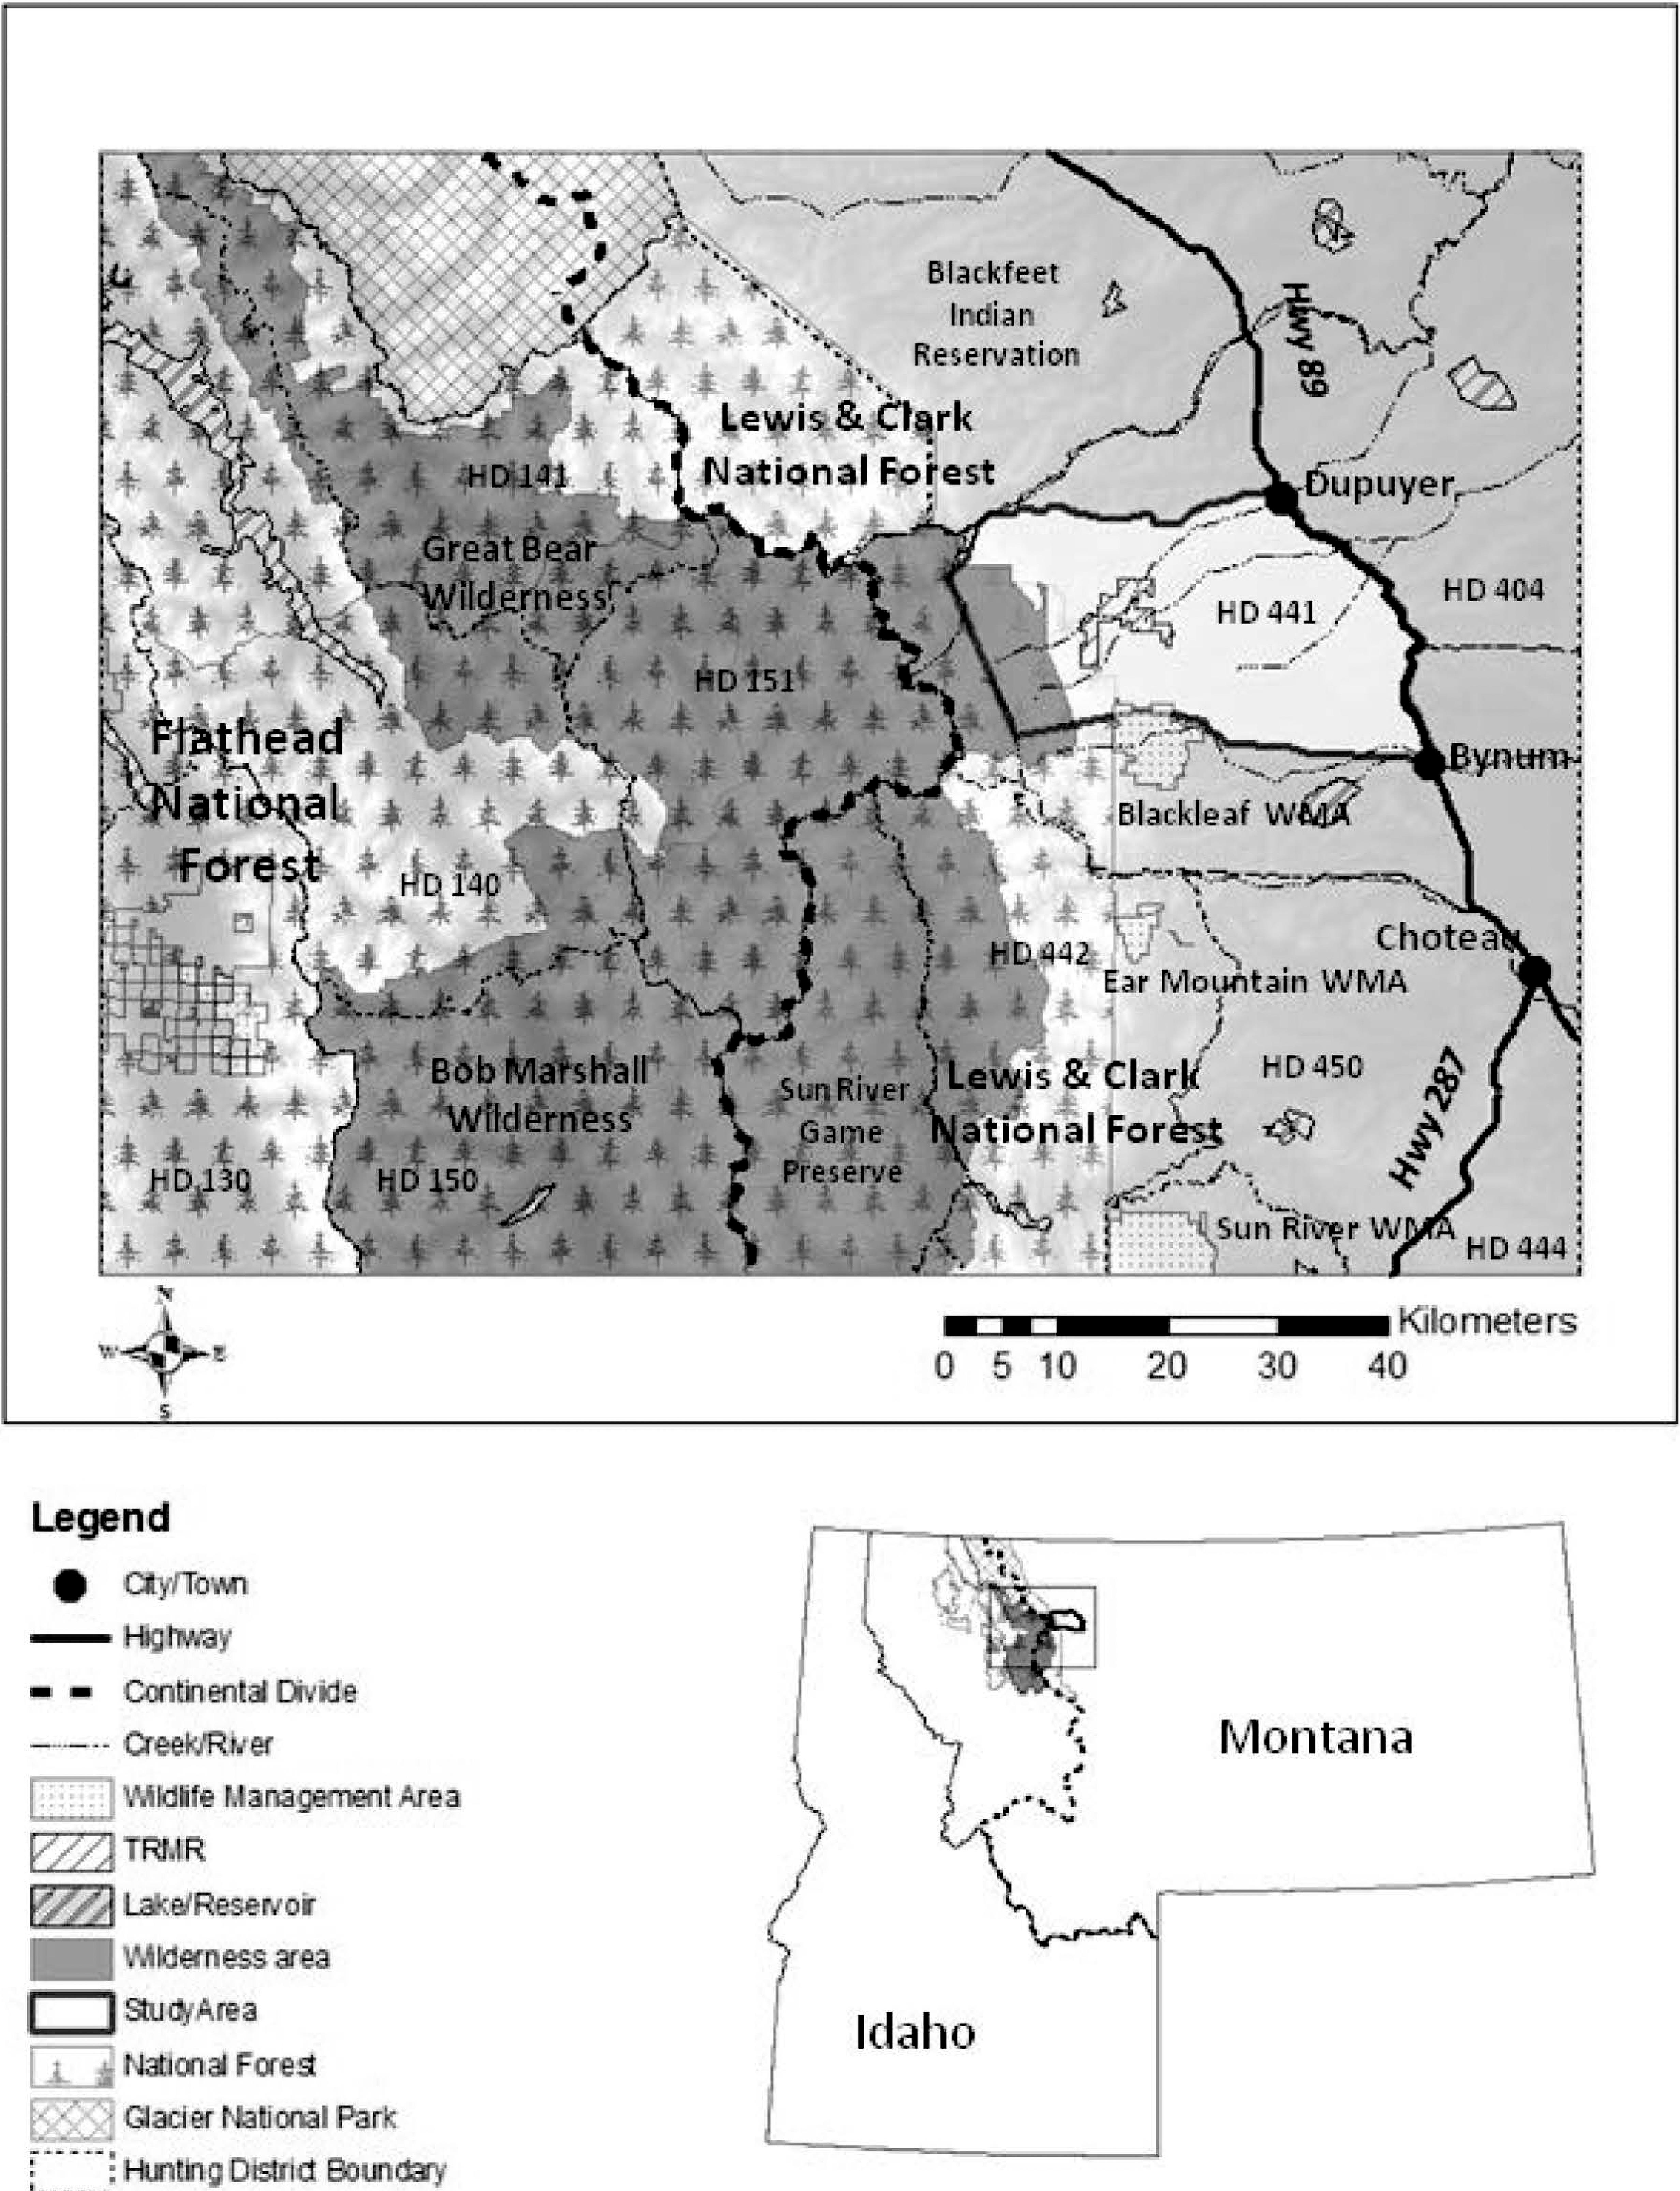 Winter Habitat use by Mule Deer in Idaho and Montana on